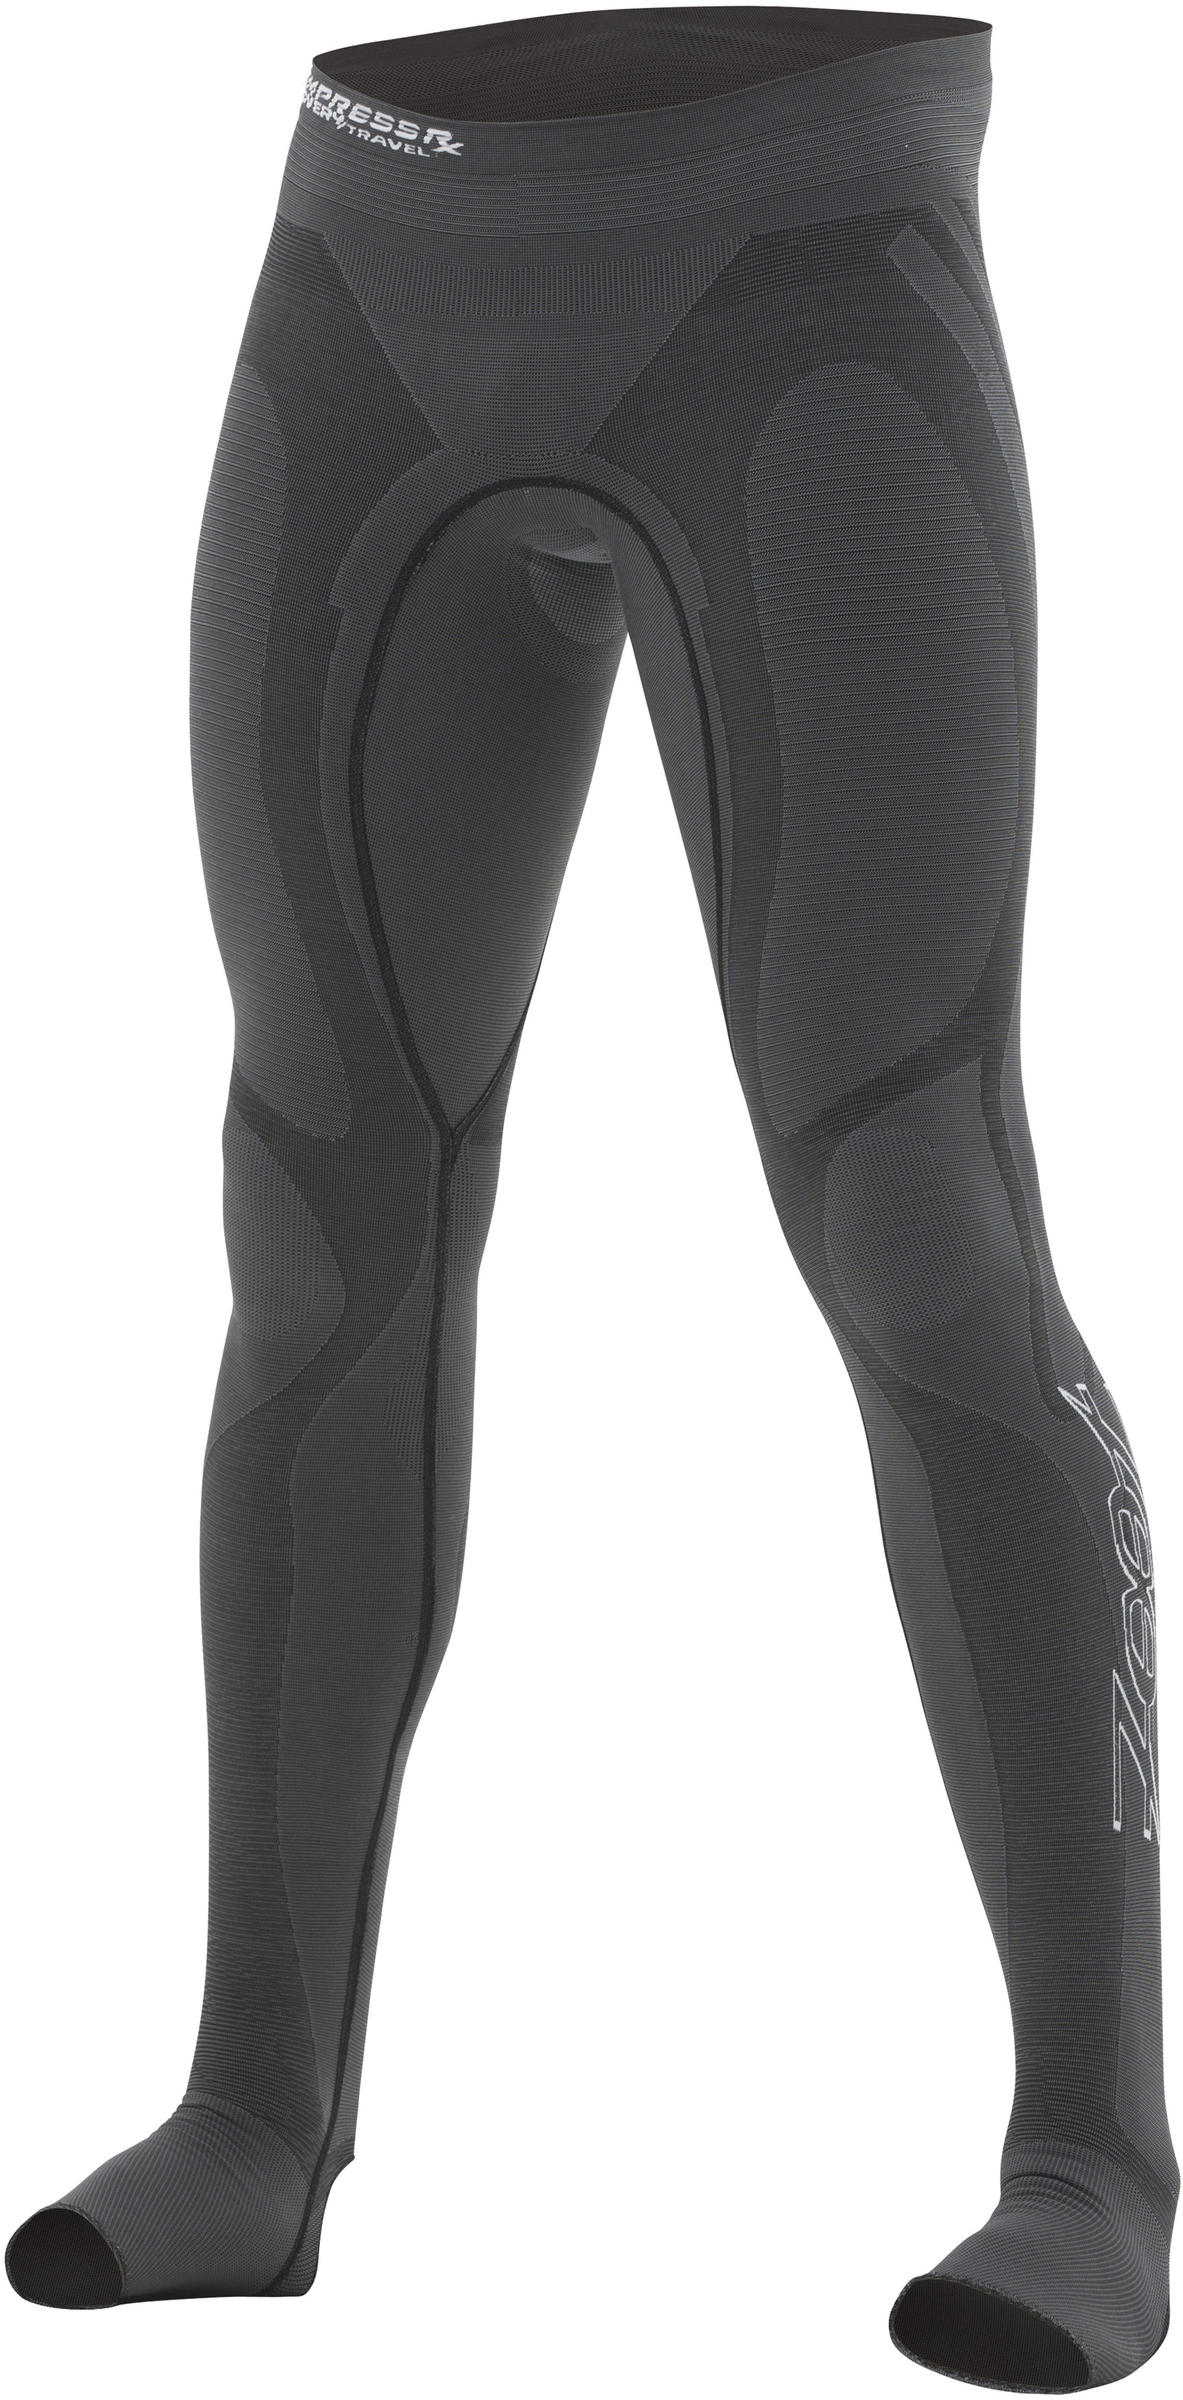 d4ddbc7cd8 Zoot Ultra CompressRx Recovery Tights - Cadence Cycling & Multisport ...